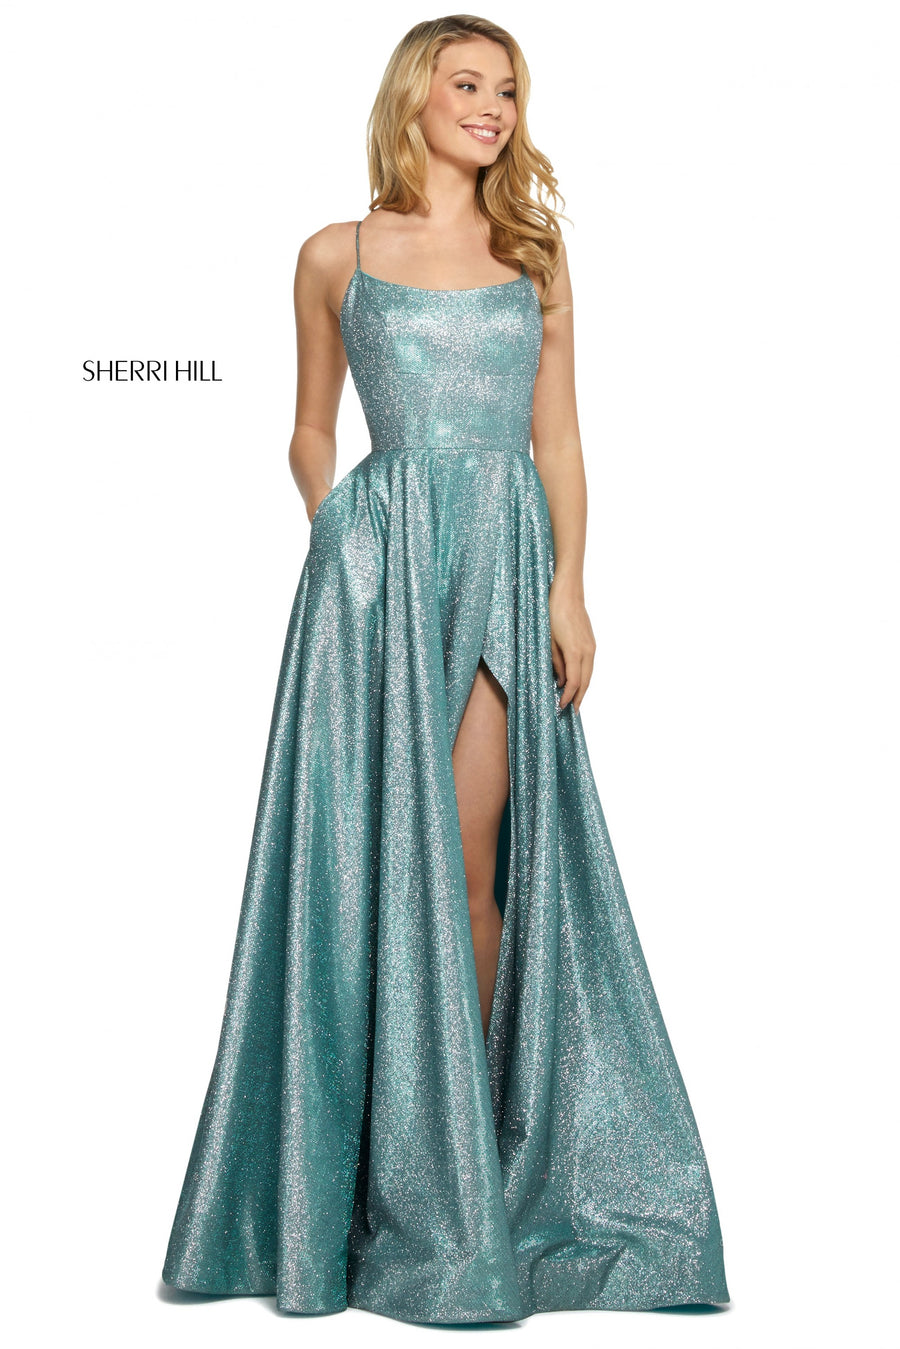 Sherri Hill 53118 prom dress images.  Sherri Hill 53118 is available in these colors: Royal Silver; Mocha Silver; Nude Silver; Aqua Silver; Fuchsia Silver; Turq Silver; Red Silver.